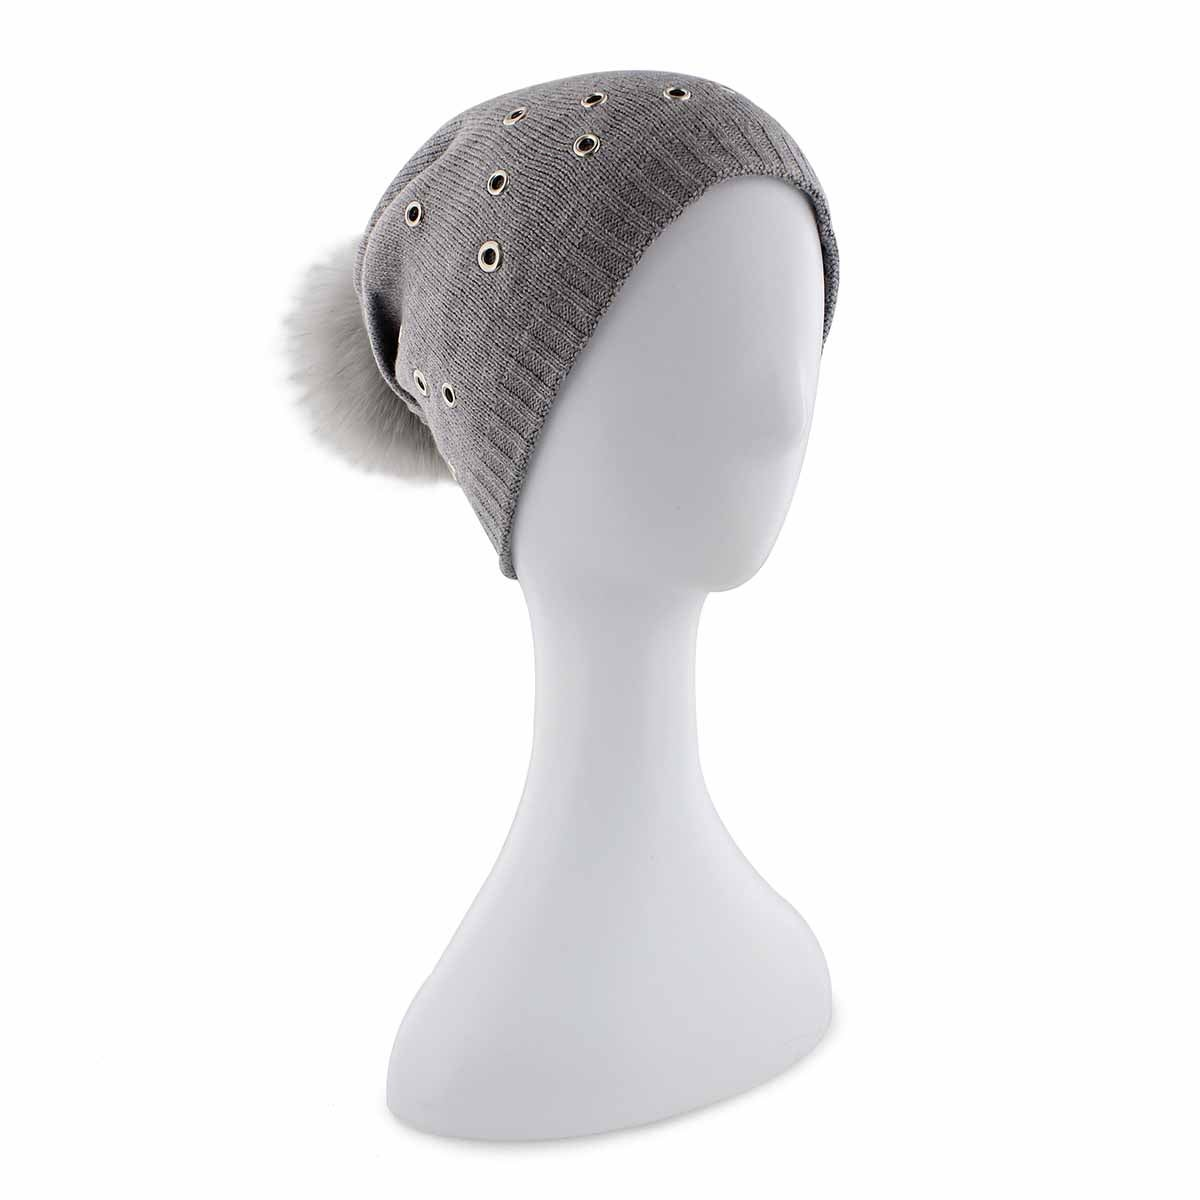 Lds Fur Pom w/ Grommets mid grey hat